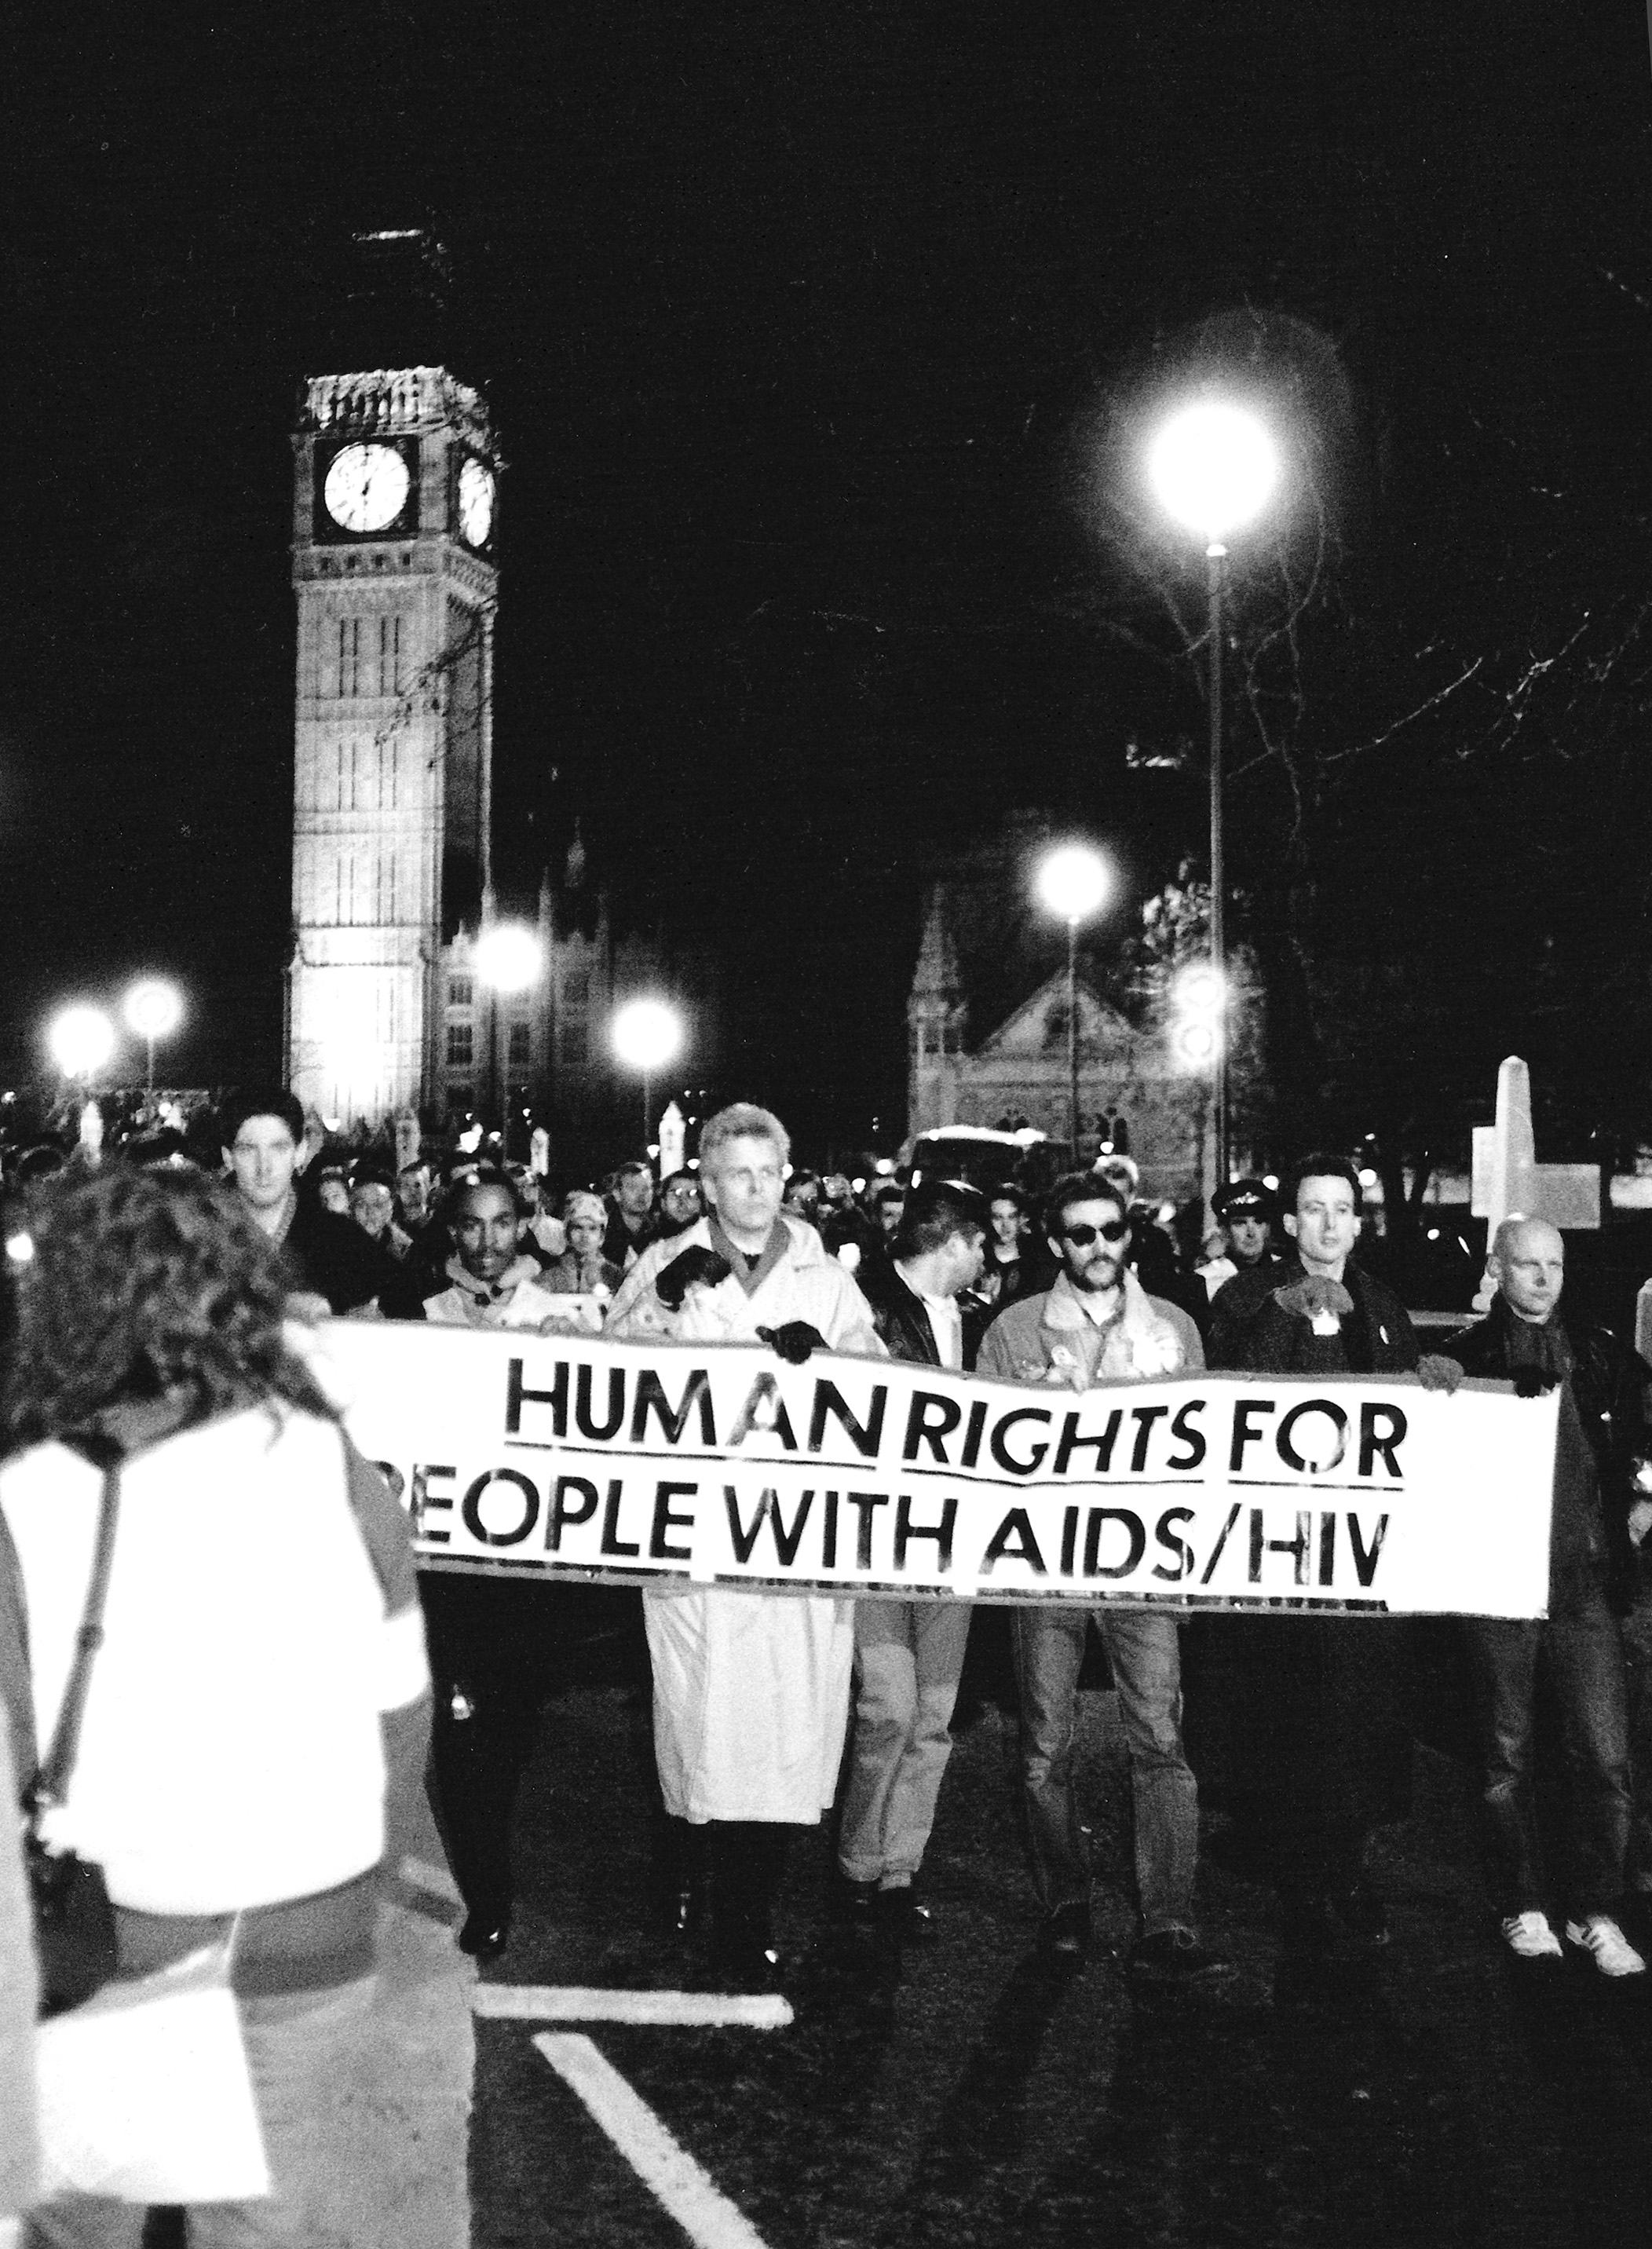 AIDS vigil, 1988 (image courtesy of Peter Tatchell)